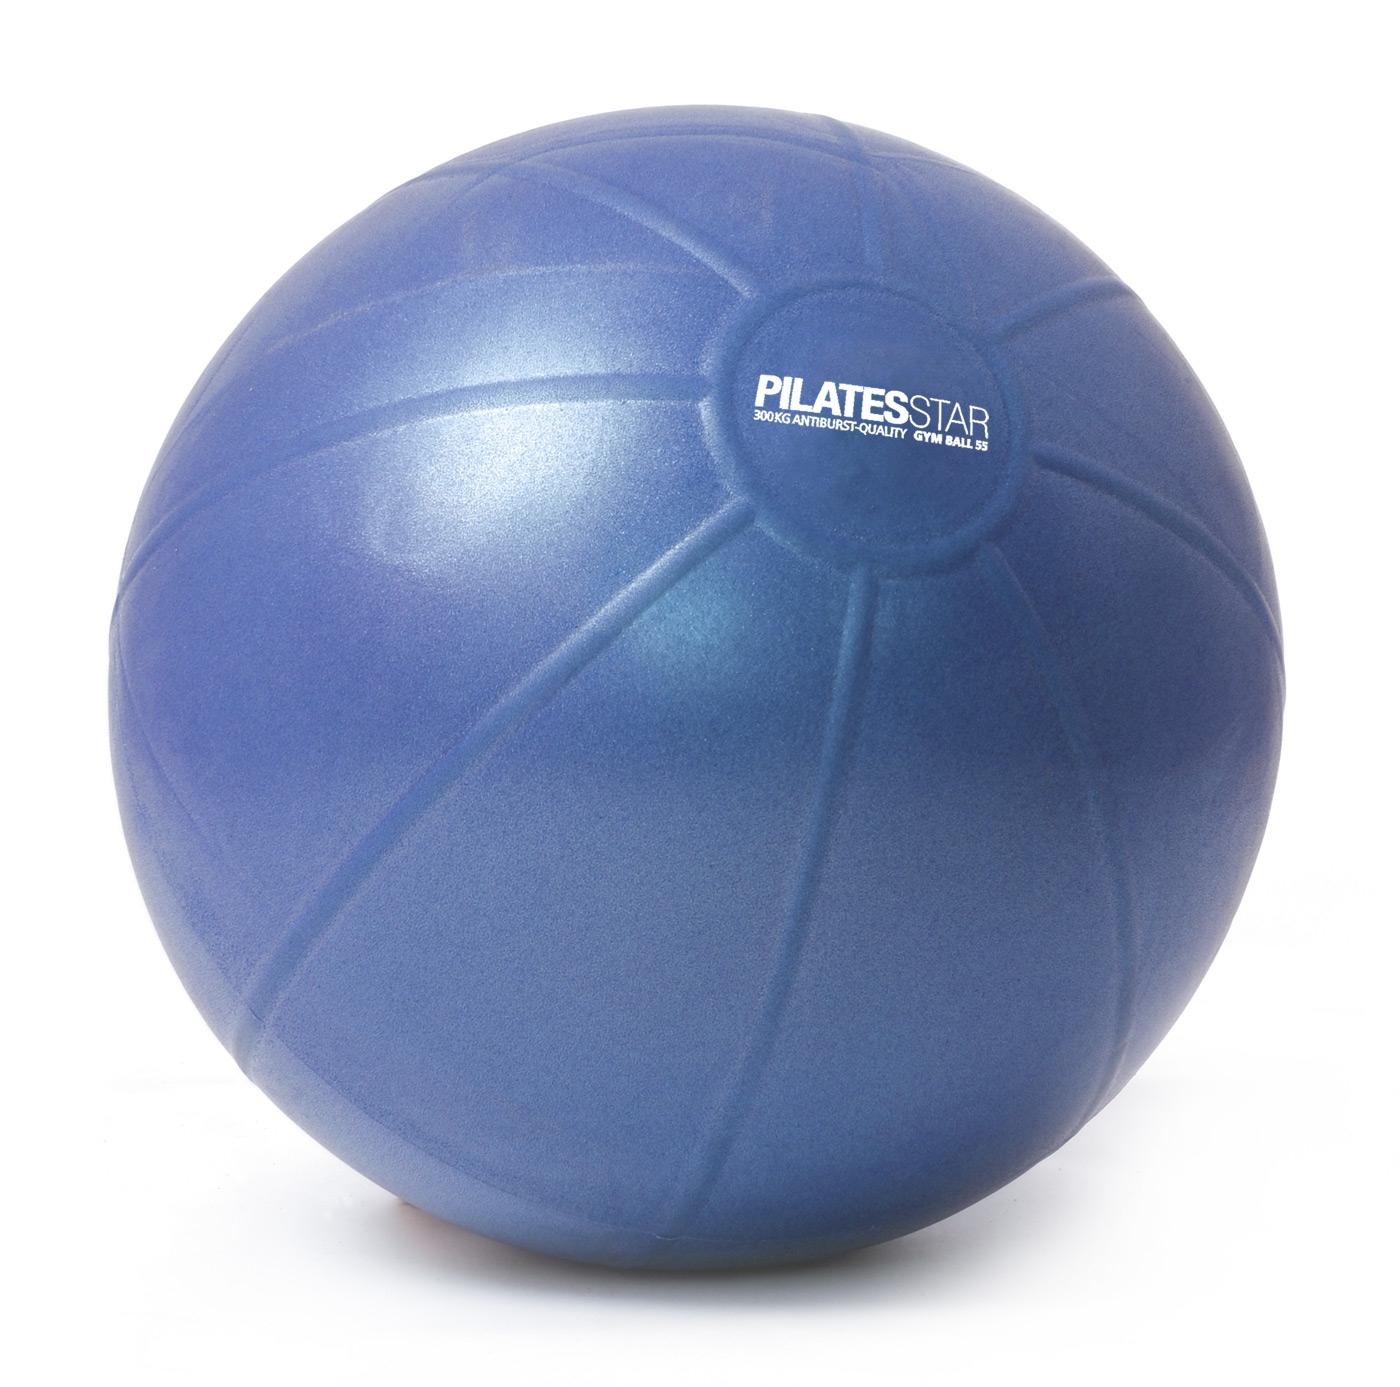 Pilates Gym Ball Blue Buy Online At Yogistar Com Yoga